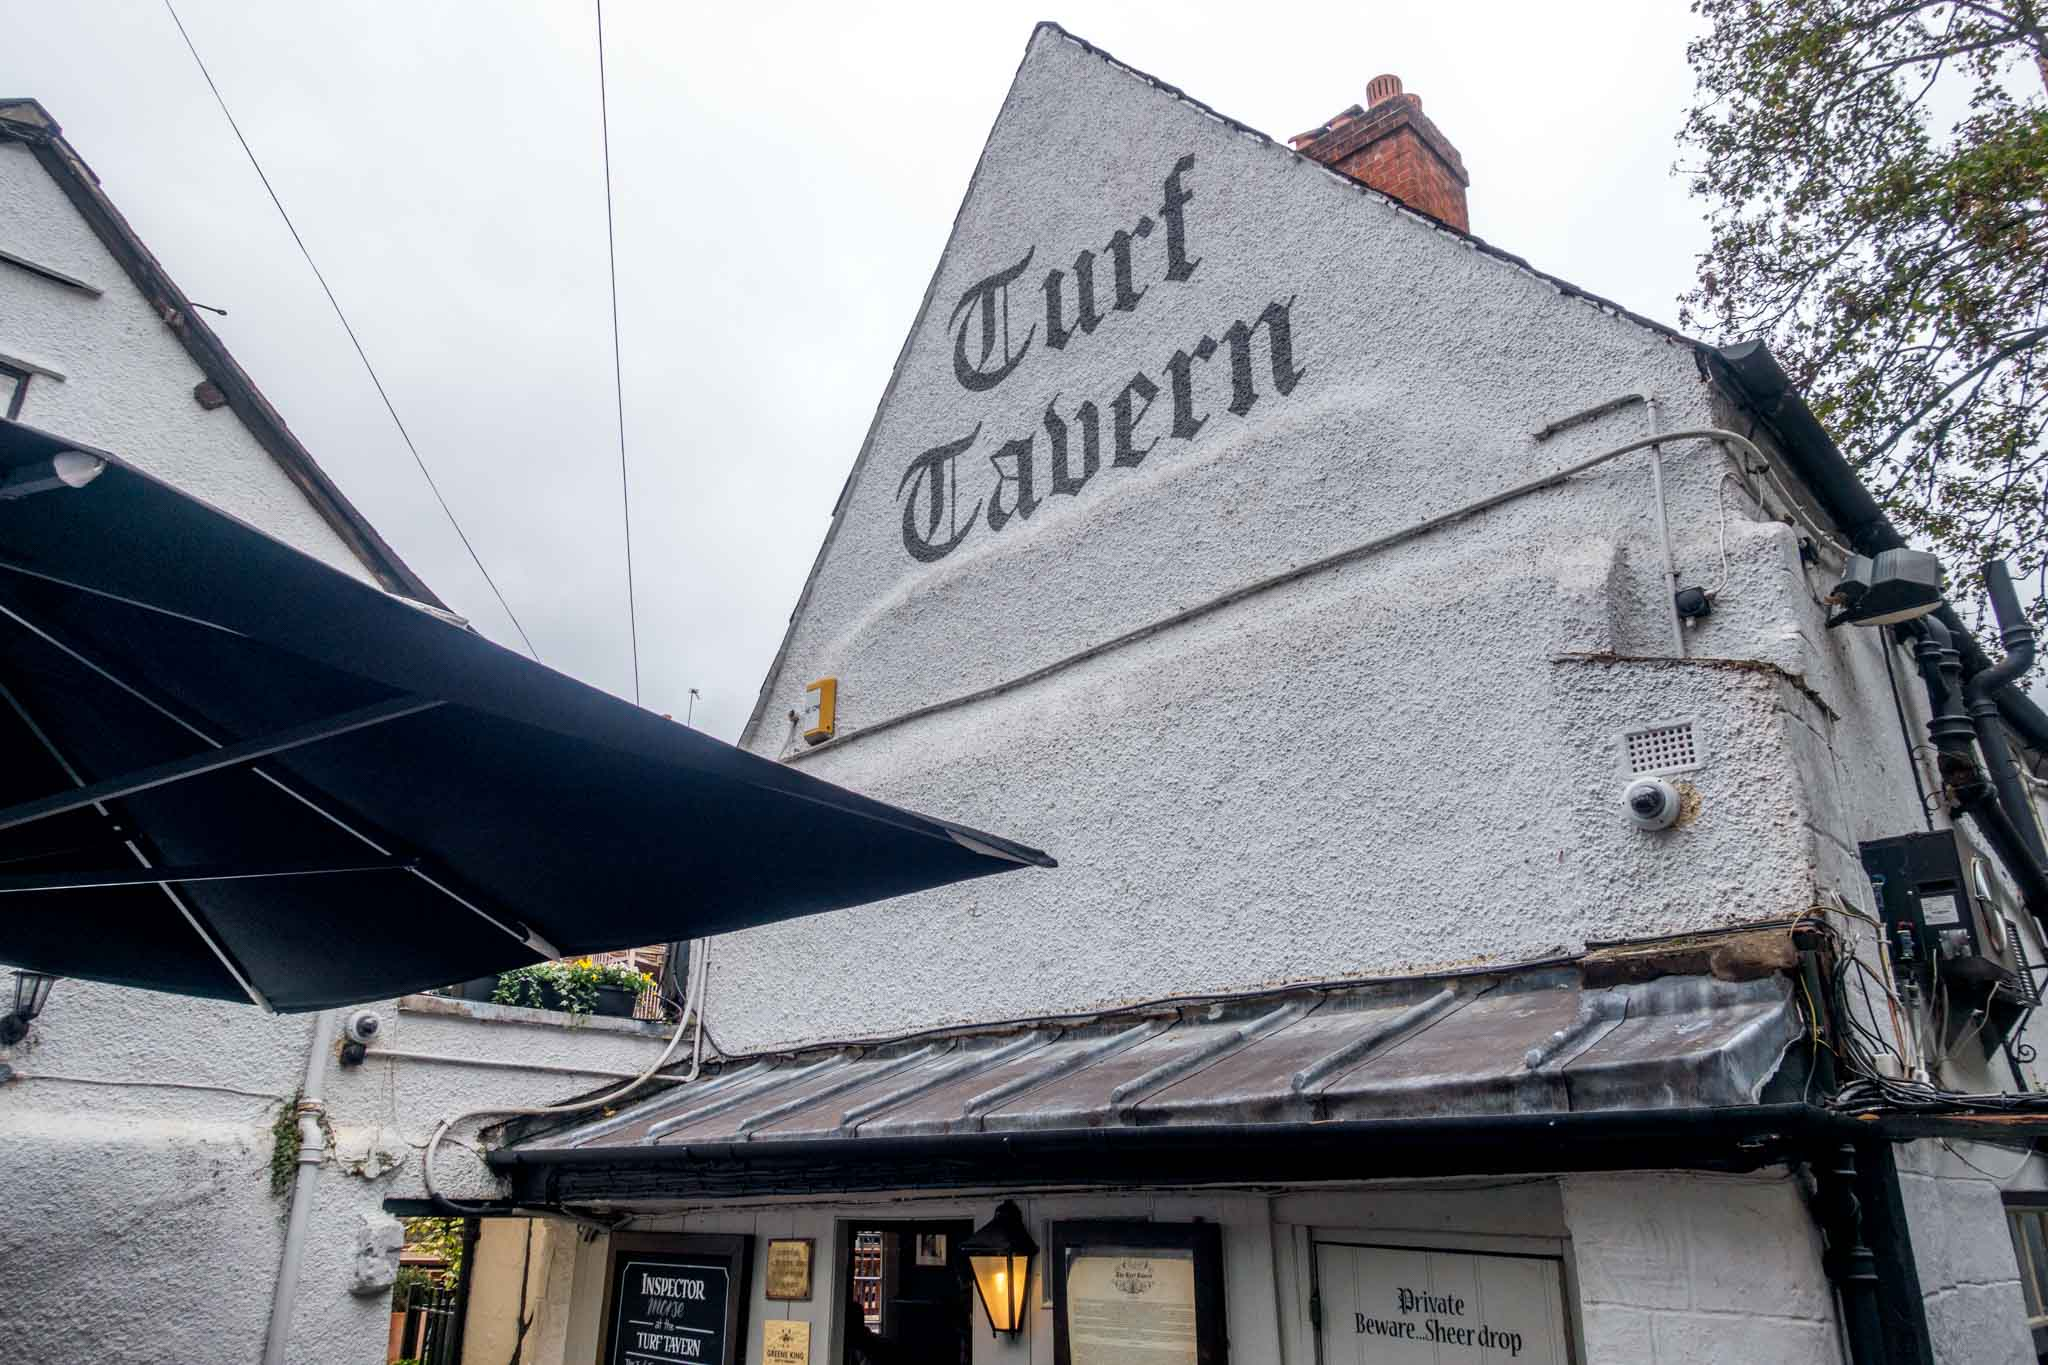 White exterior and sign at the historic Turf Tavern